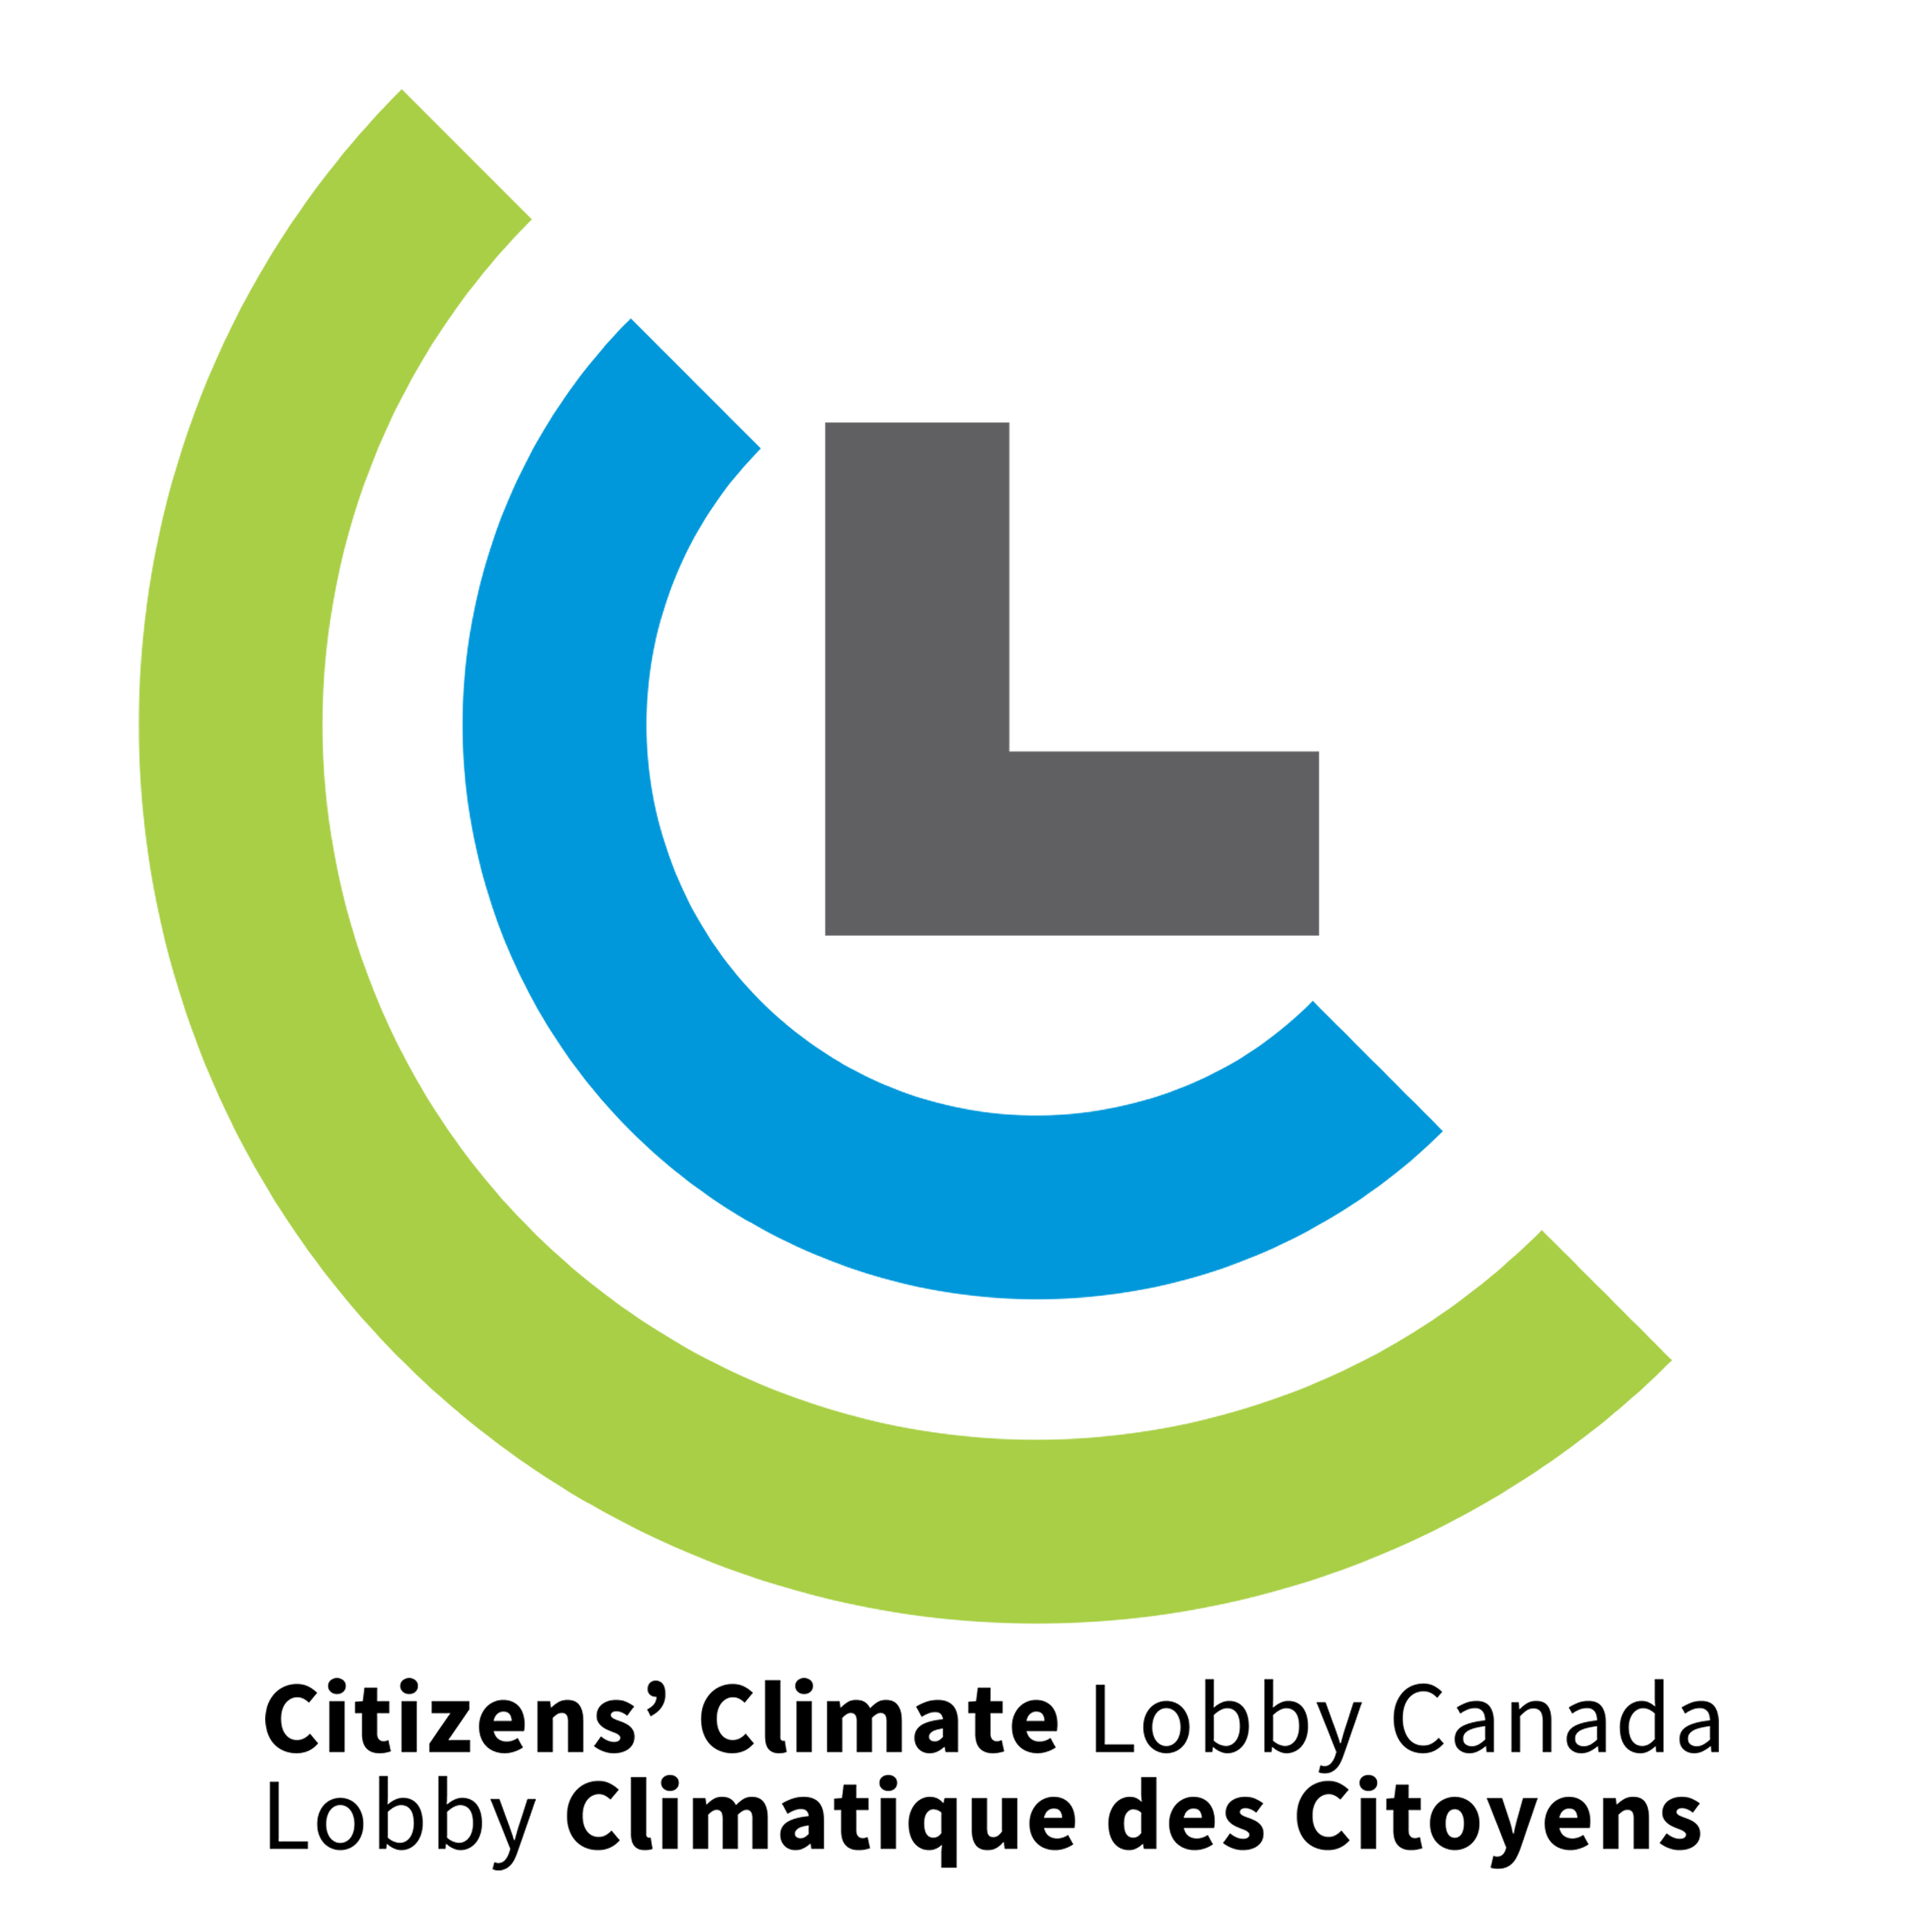 Citizens' Climate Lobby Canada